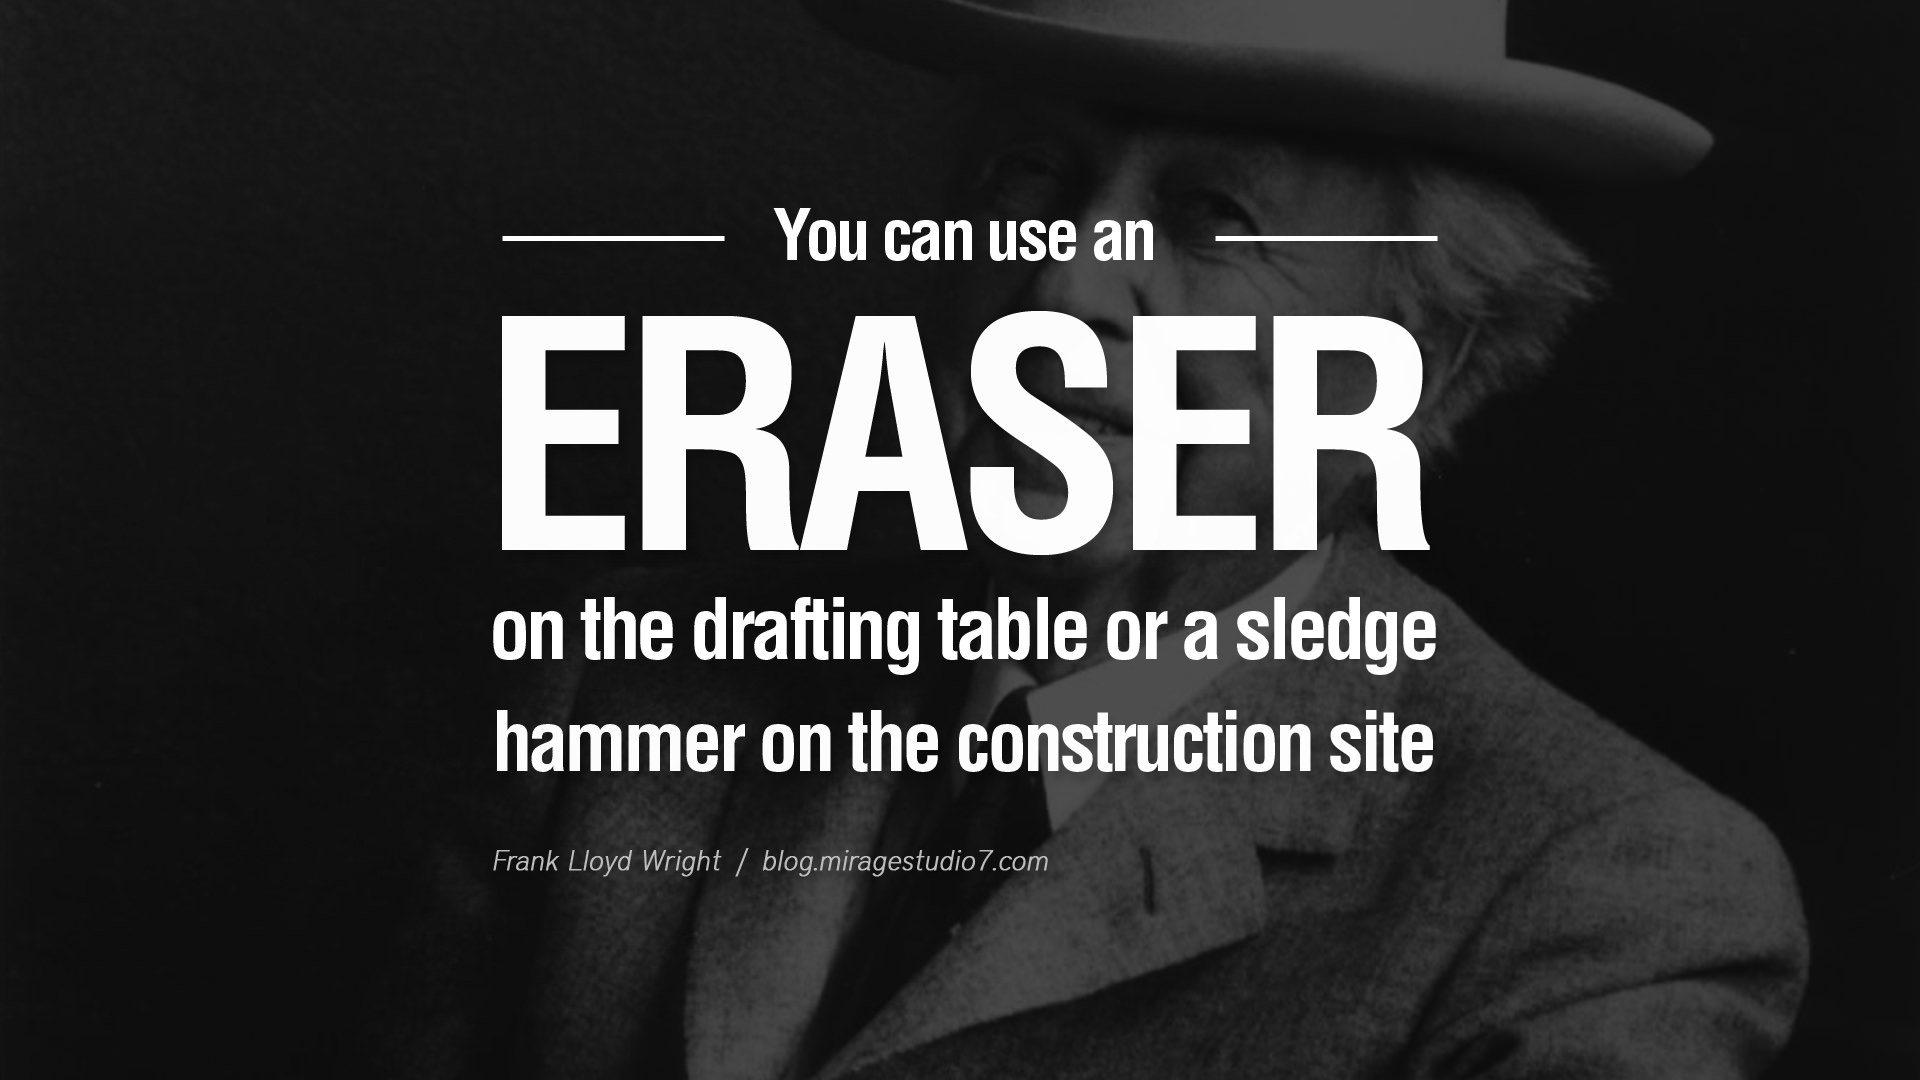 quotes architecture famous architects drafting frank lloyd wright construction architect student pimp hammer inspirational sledge site quotesgram helpful sustainable im